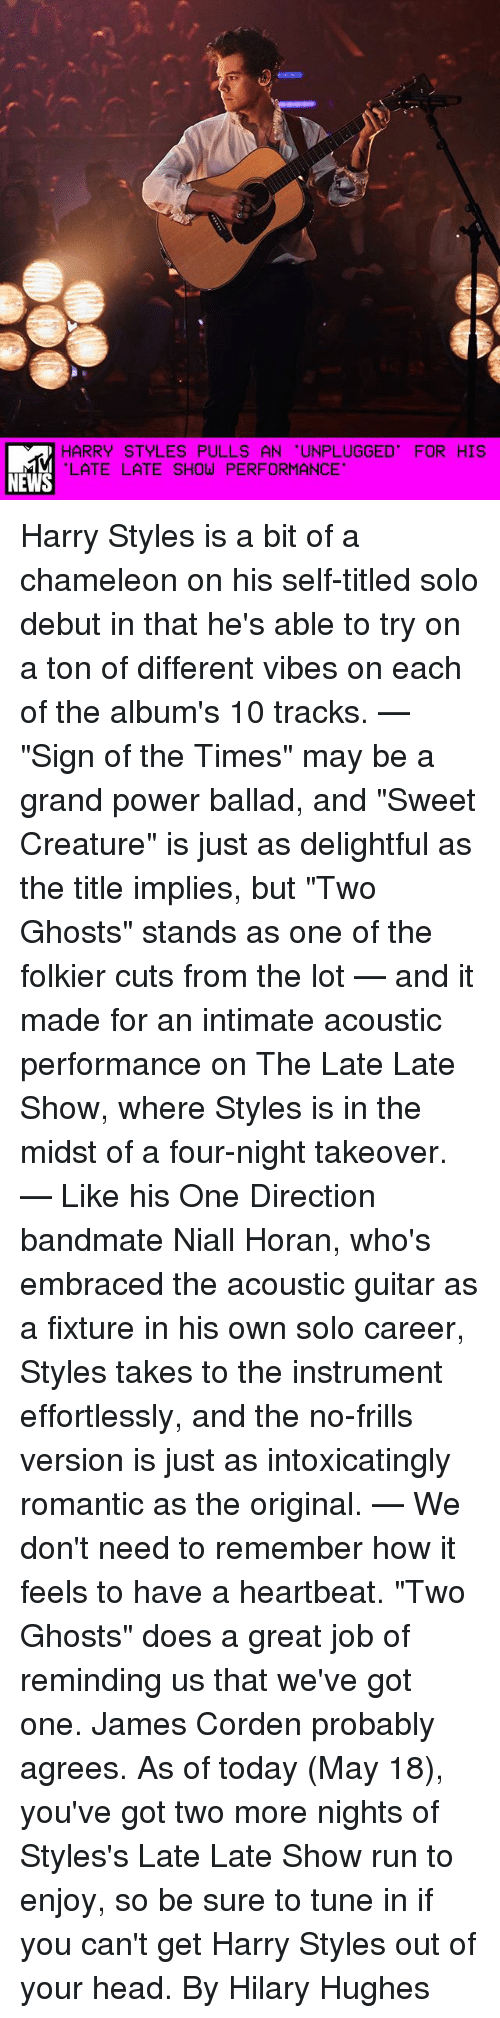 """James Corden: HARRY STYLES PULLS AN 'UNPLUGGED' FOR HIS  LATE LATE SHOW PERFORMANCE  NEWS Harry Styles is a bit of a chameleon on his self-titled solo debut in that he's able to try on a ton of different vibes on each of the album's 10 tracks. — """"Sign of the Times"""" may be a grand power ballad, and """"Sweet Creature"""" is just as delightful as the title implies, but """"Two Ghosts"""" stands as one of the folkier cuts from the lot — and it made for an intimate acoustic performance on The Late Late Show, where Styles is in the midst of a four-night takeover. — Like his One Direction bandmate Niall Horan, who's embraced the acoustic guitar as a fixture in his own solo career, Styles takes to the instrument effortlessly, and the no-frills version is just as intoxicatingly romantic as the original. — We don't need to remember how it feels to have a heartbeat. """"Two Ghosts"""" does a great job of reminding us that we've got one. James Corden probably agrees. As of today (May 18), you've got two more nights of Styles's Late Late Show run to enjoy, so be sure to tune in if you can't get Harry Styles out of your head. By Hilary Hughes"""